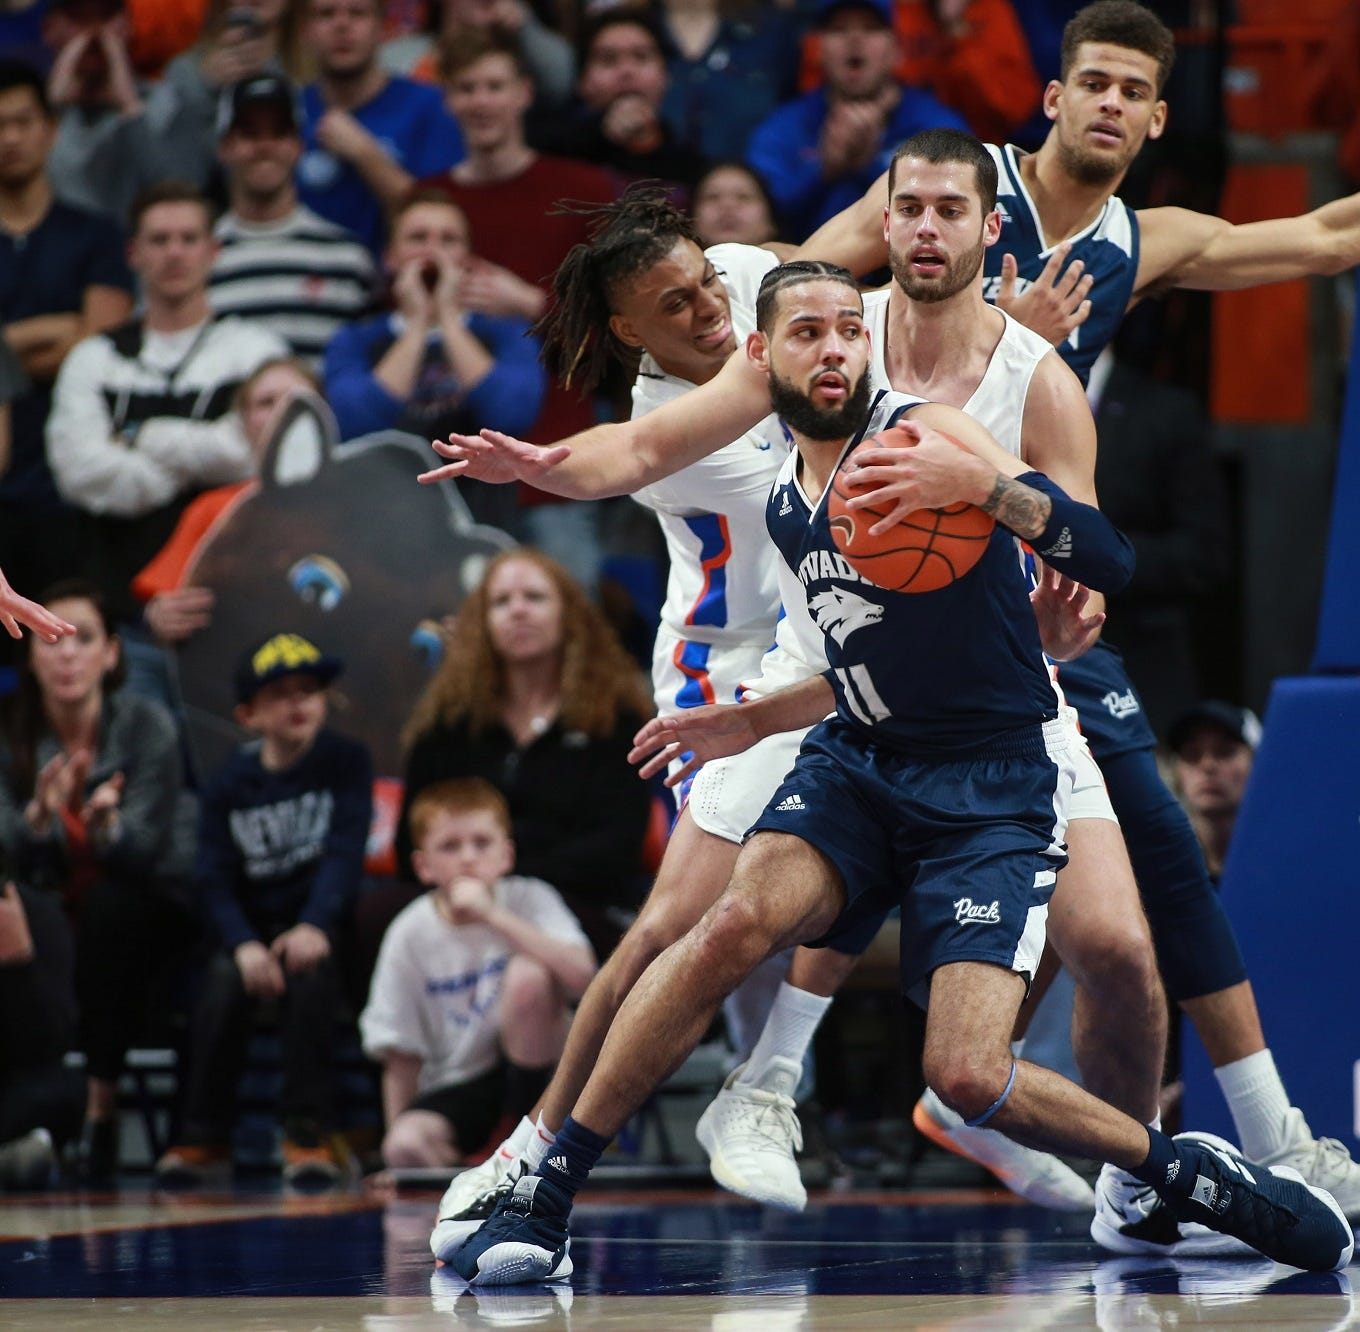 Mountain West rankings: Nevada is solid, but the middle is a mess